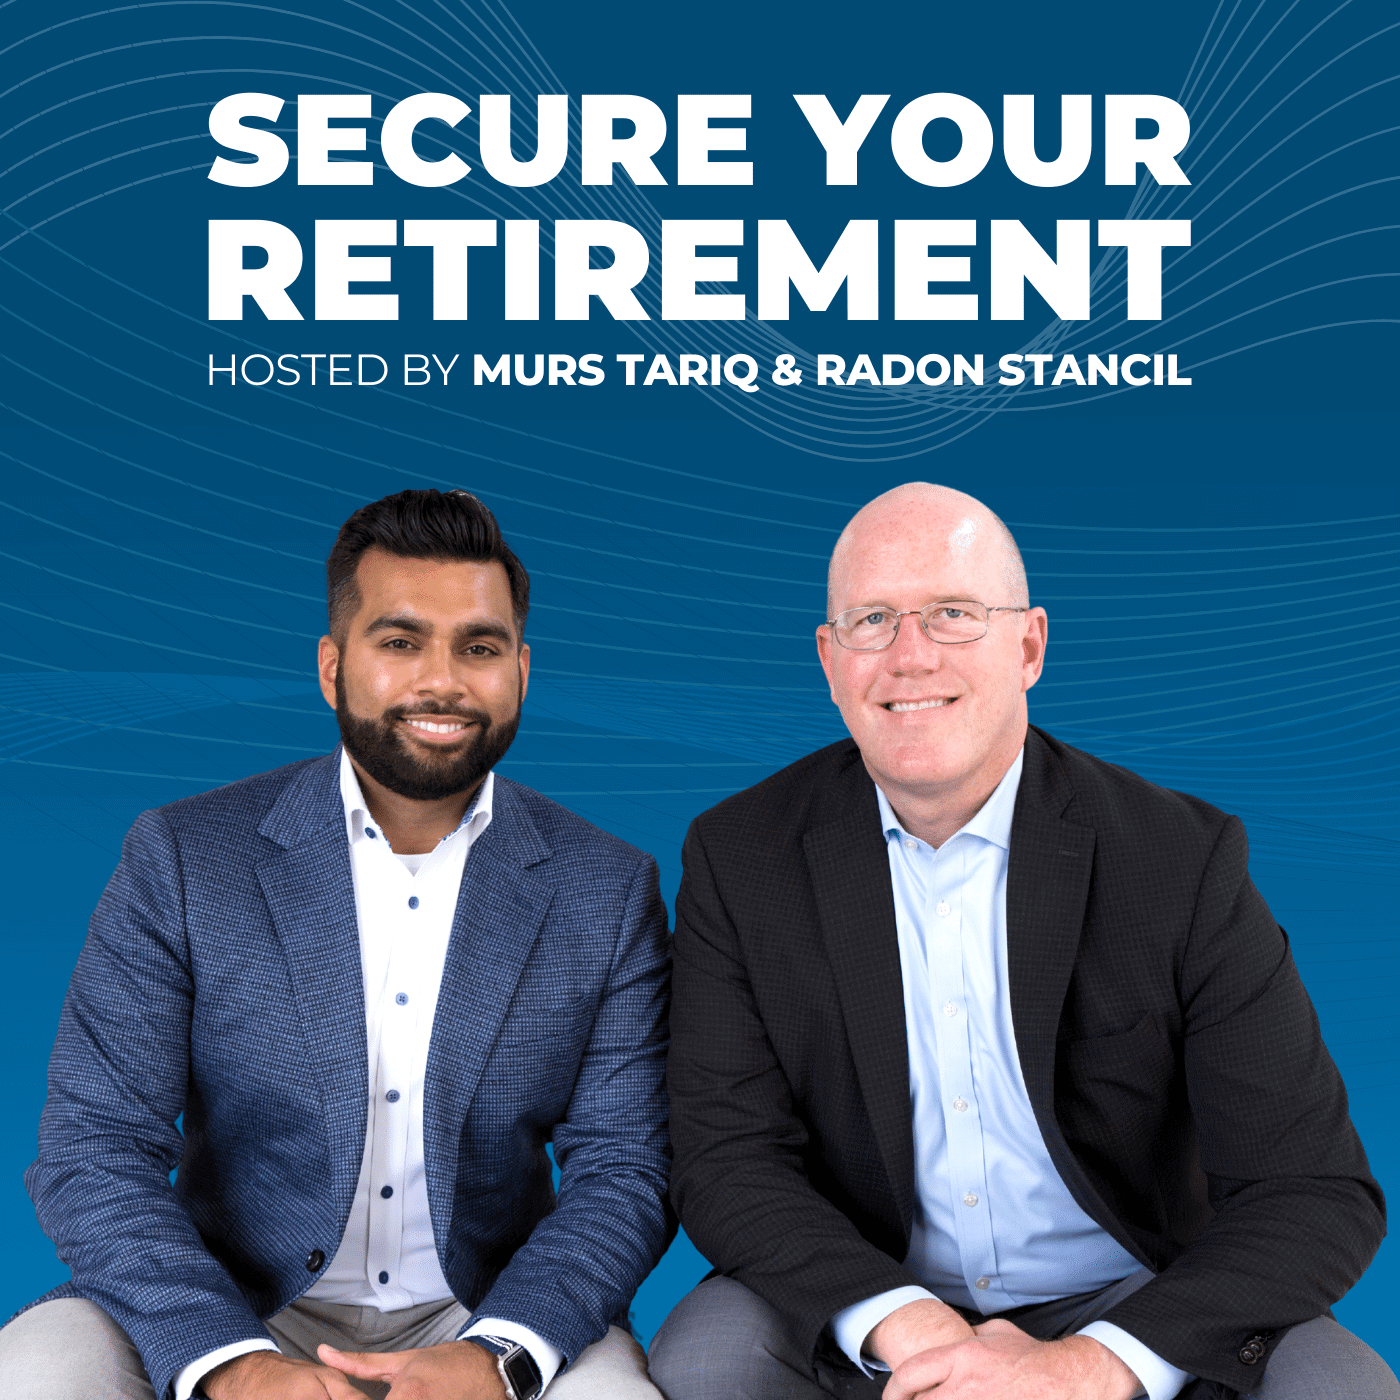 Artwork for podcast Secure Your Retirement